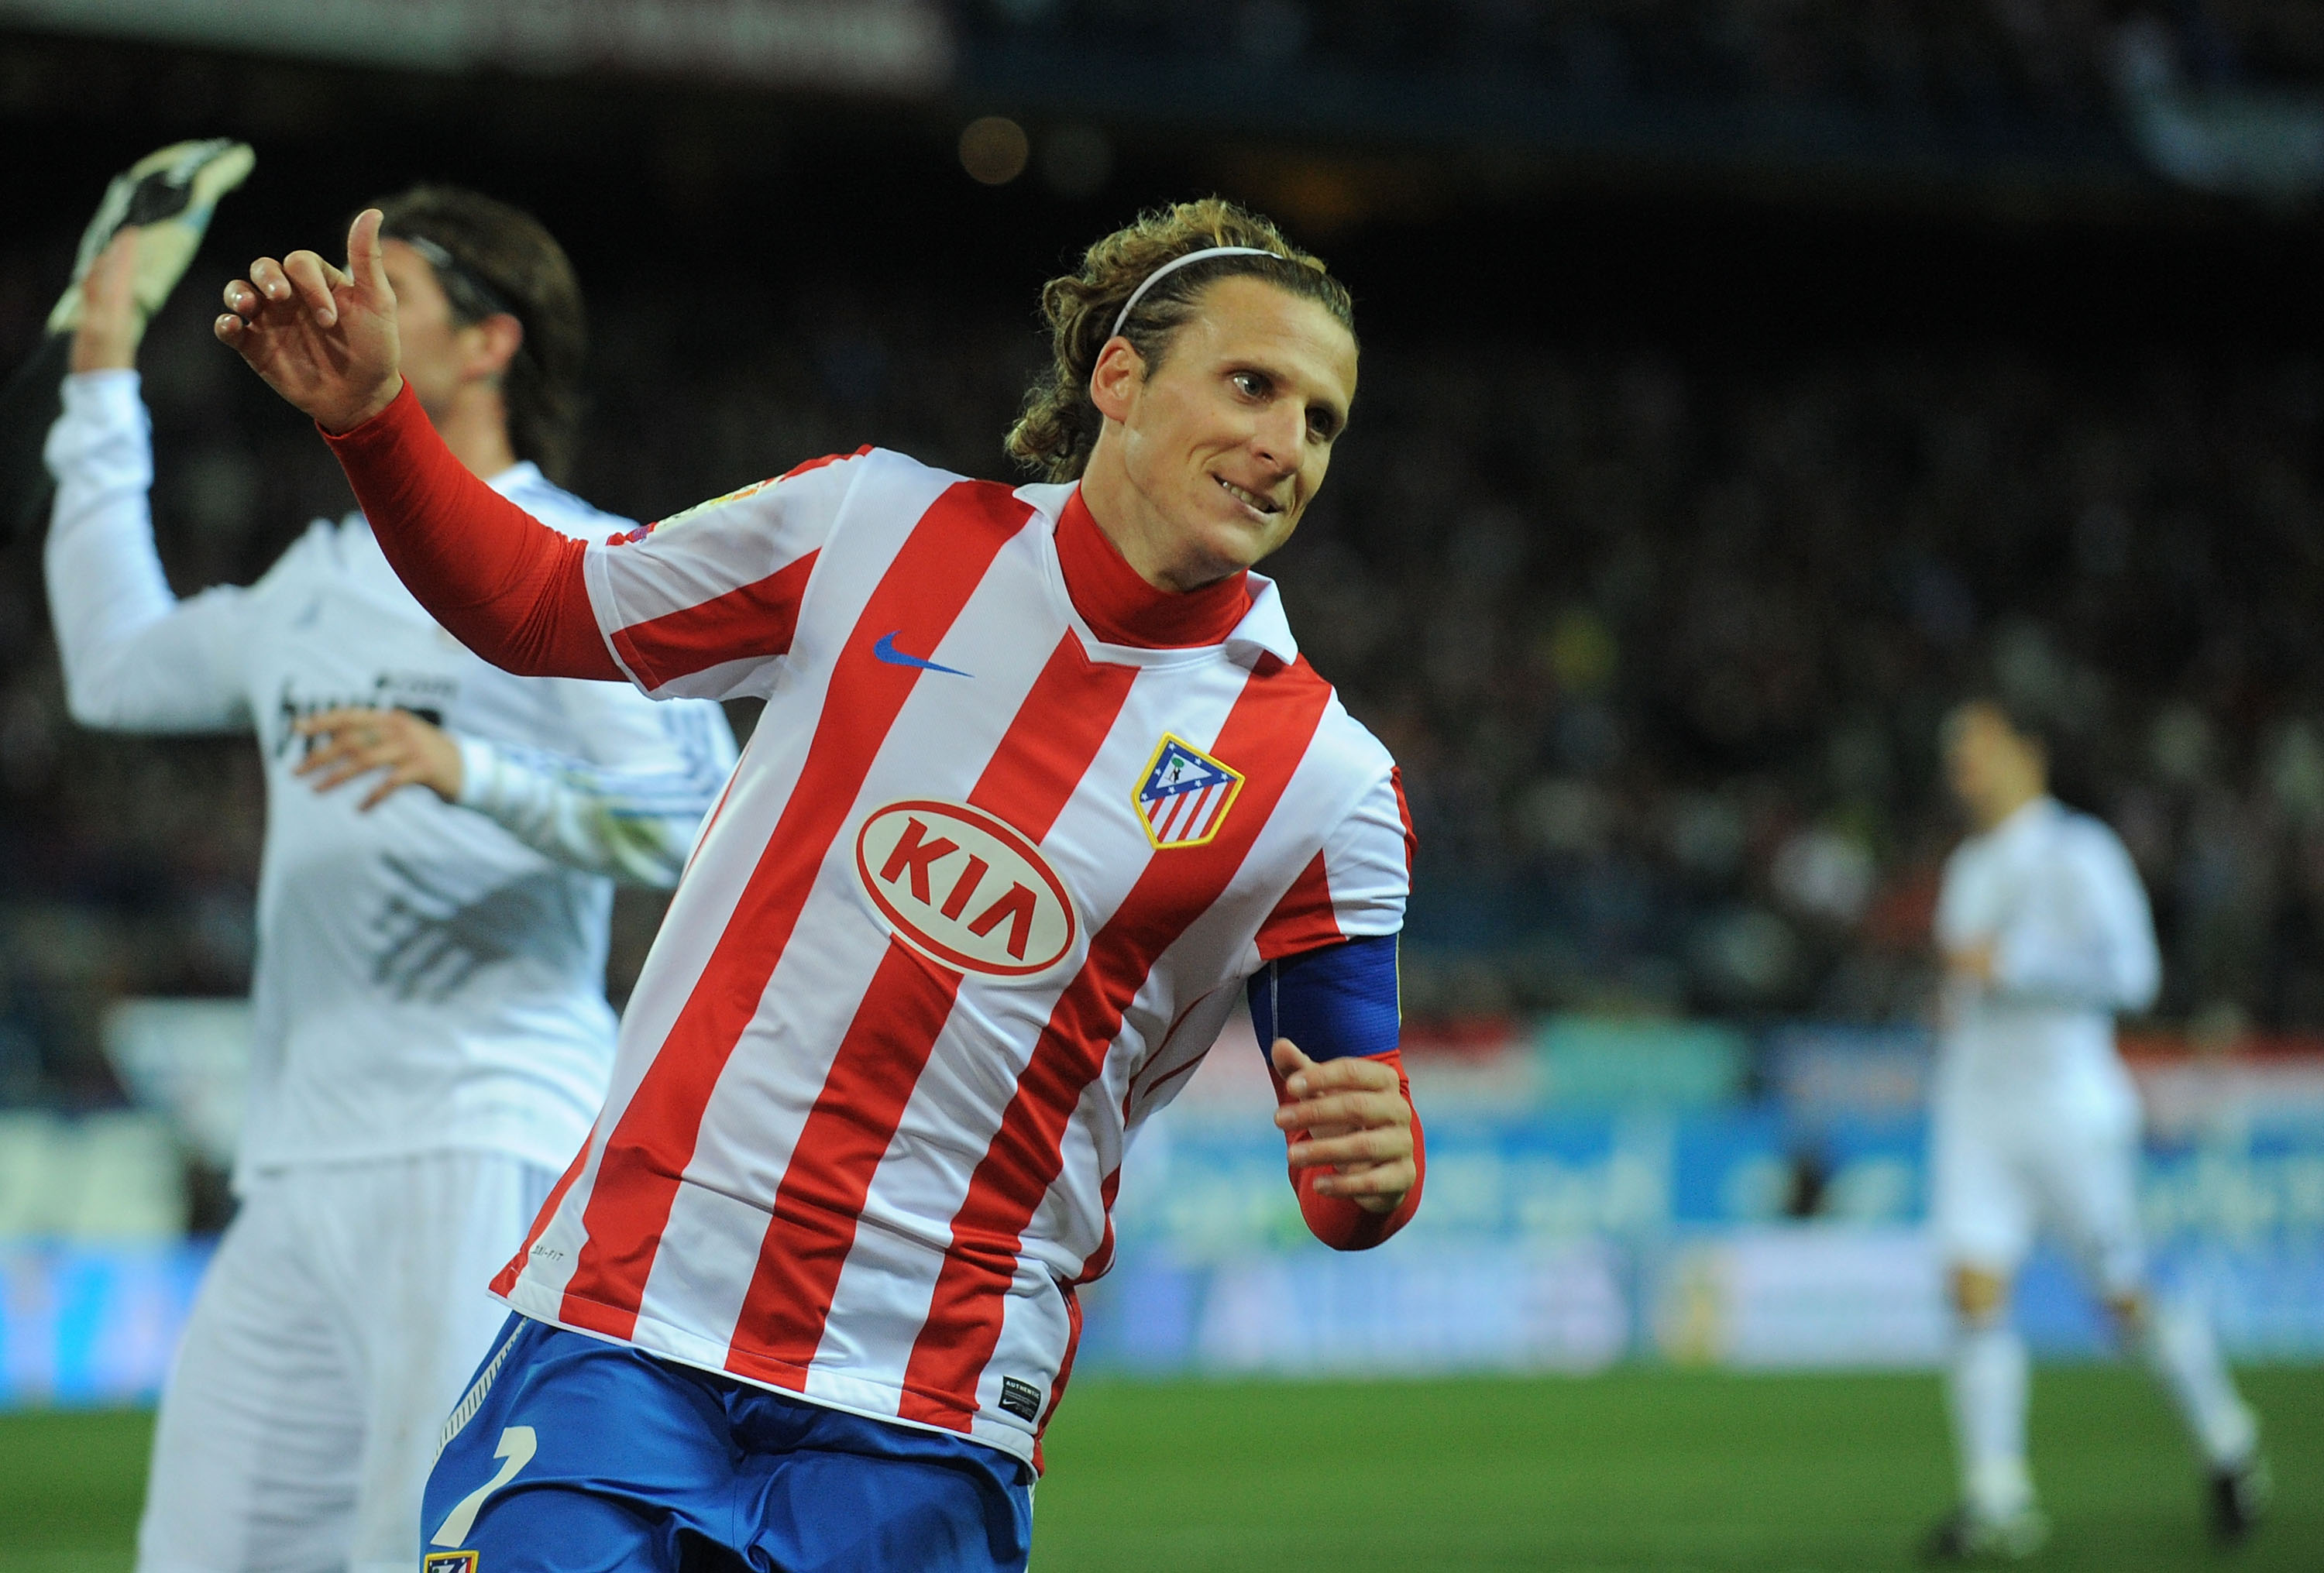 MADRID, SPAIN - JANUARY 20:  Diego Forlan of Atletico Madrid reacts during the Copa del Rey quarter final second leg match between Atletico Madrid and Real Madrid at Vicente Calderon Stadium on January 20, 2011 in Madrid, Spain.  (Photo by Denis Doyle/Get